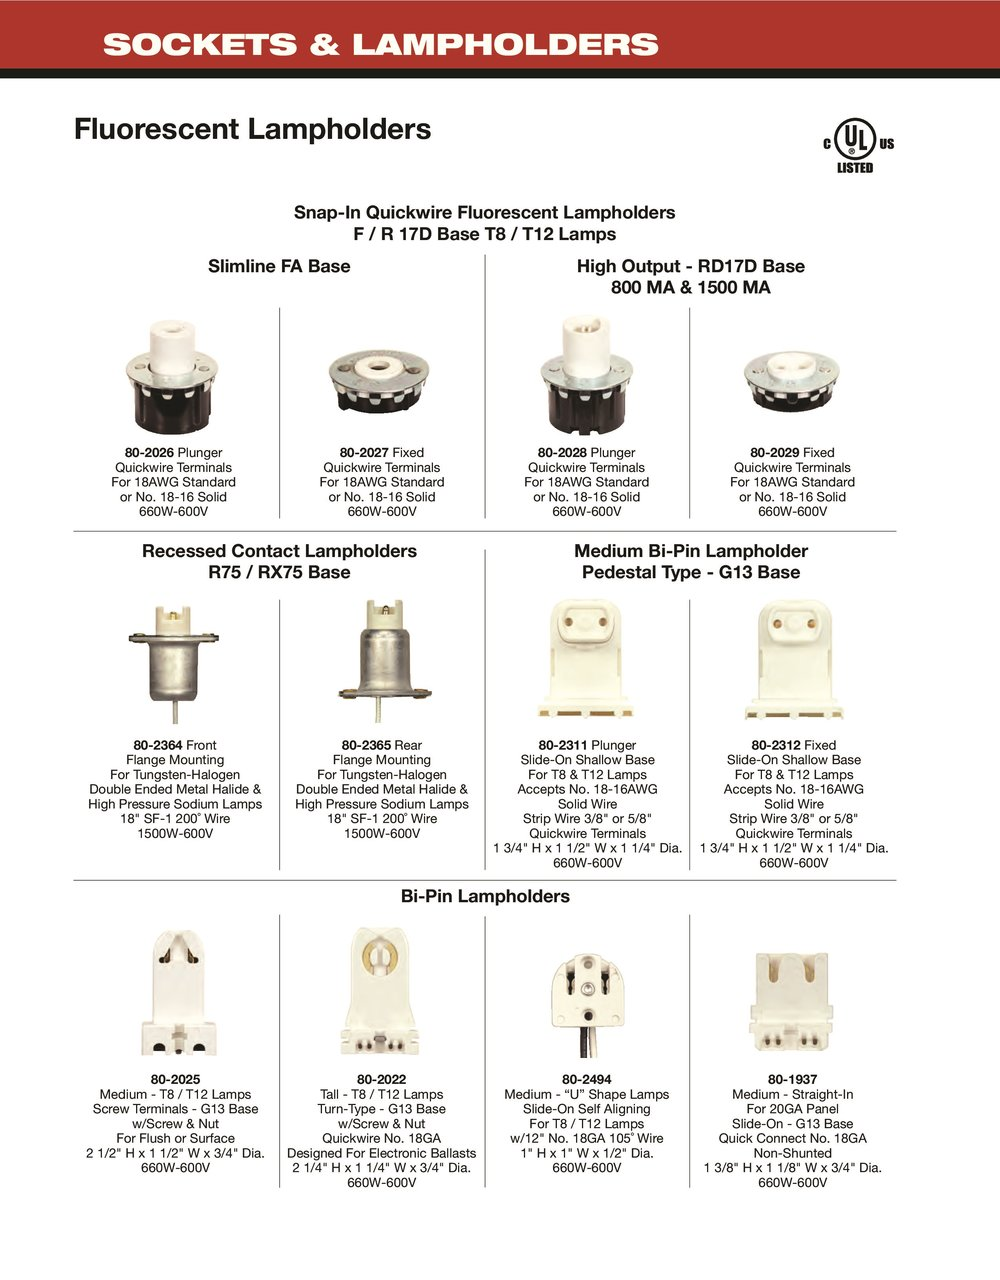 Fluorescent Sockets The Lighting Guy How To Convert T12 T8 Slimline Lampholders And